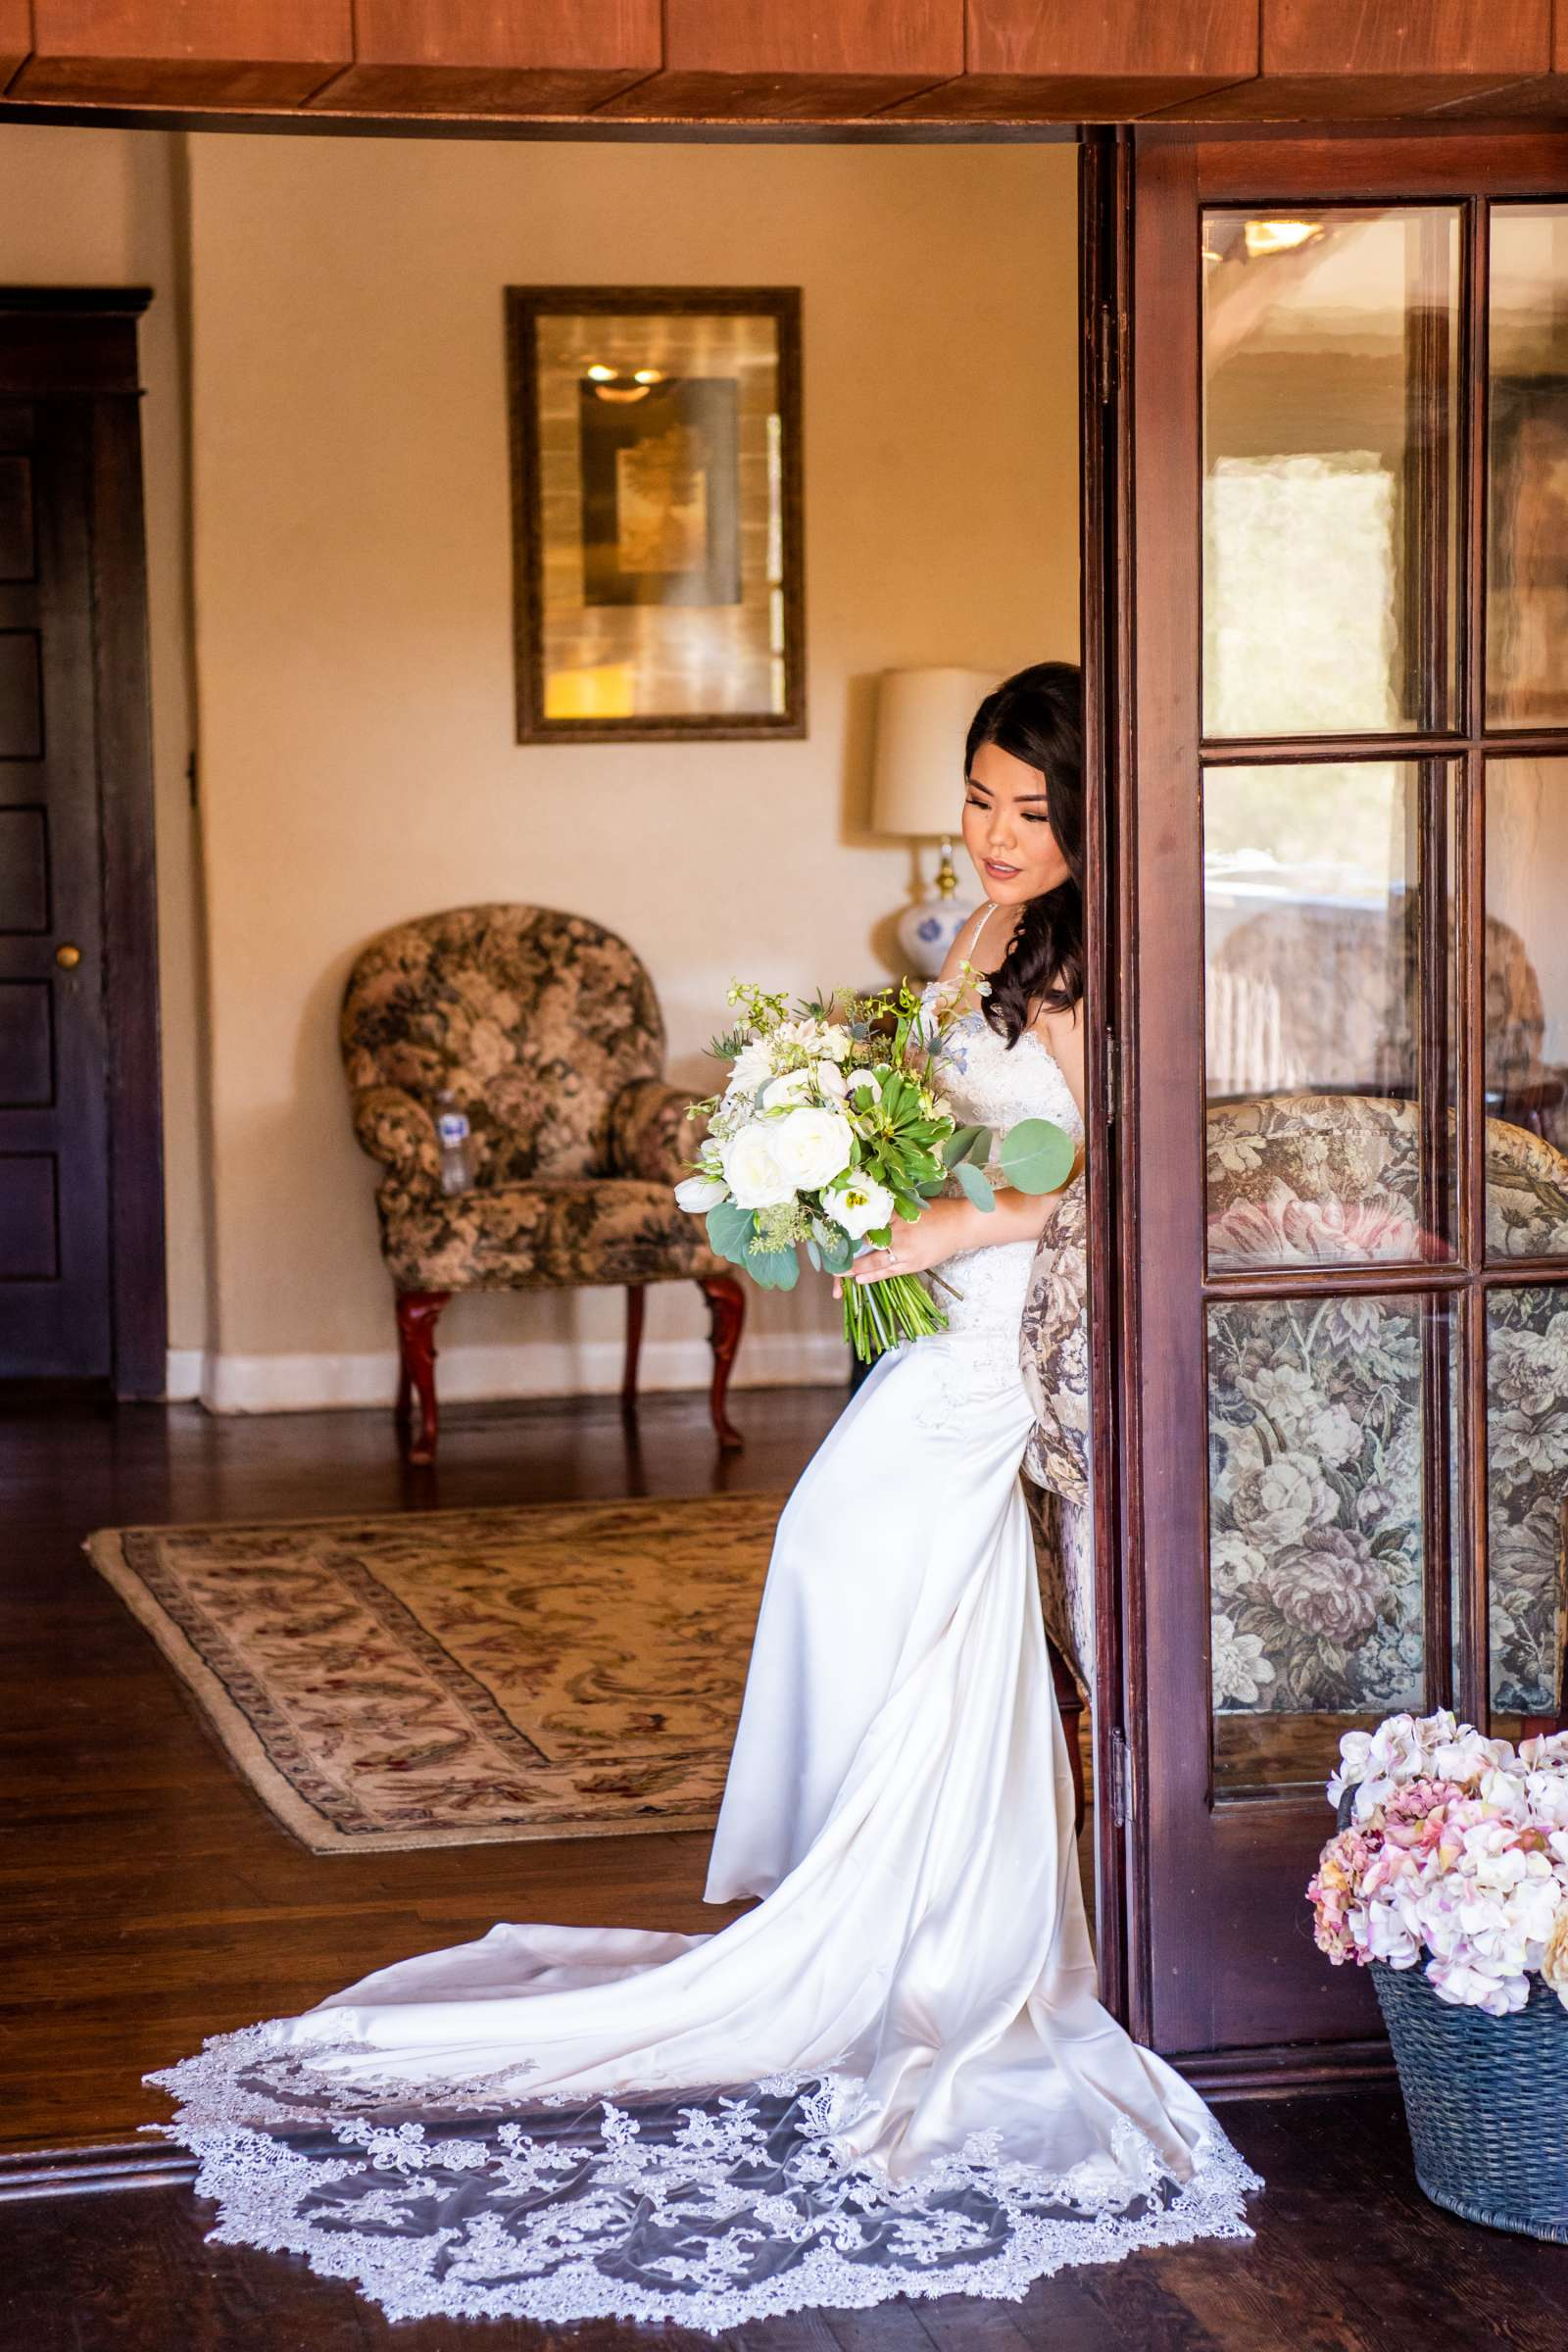 Mt Woodson Castle Wedding coordinated by I Do Weddings, Aya and Jared Wedding Photo #486884 by True Photography